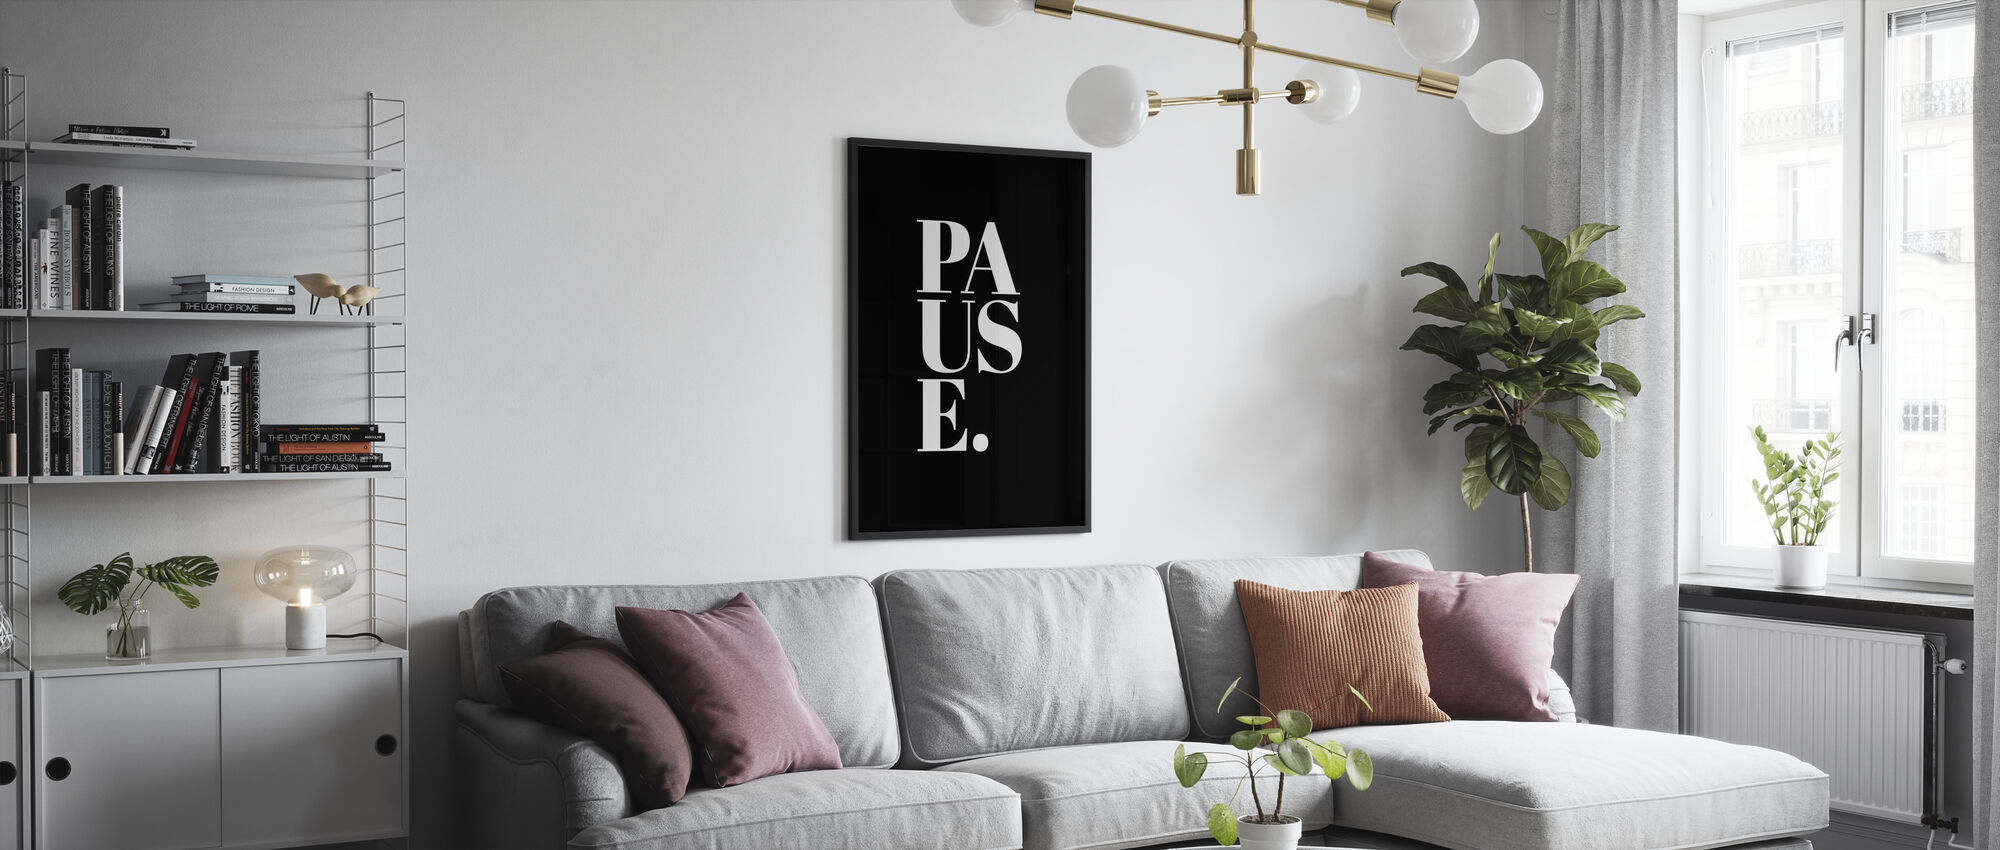 Pause II - Framed print - Living Room